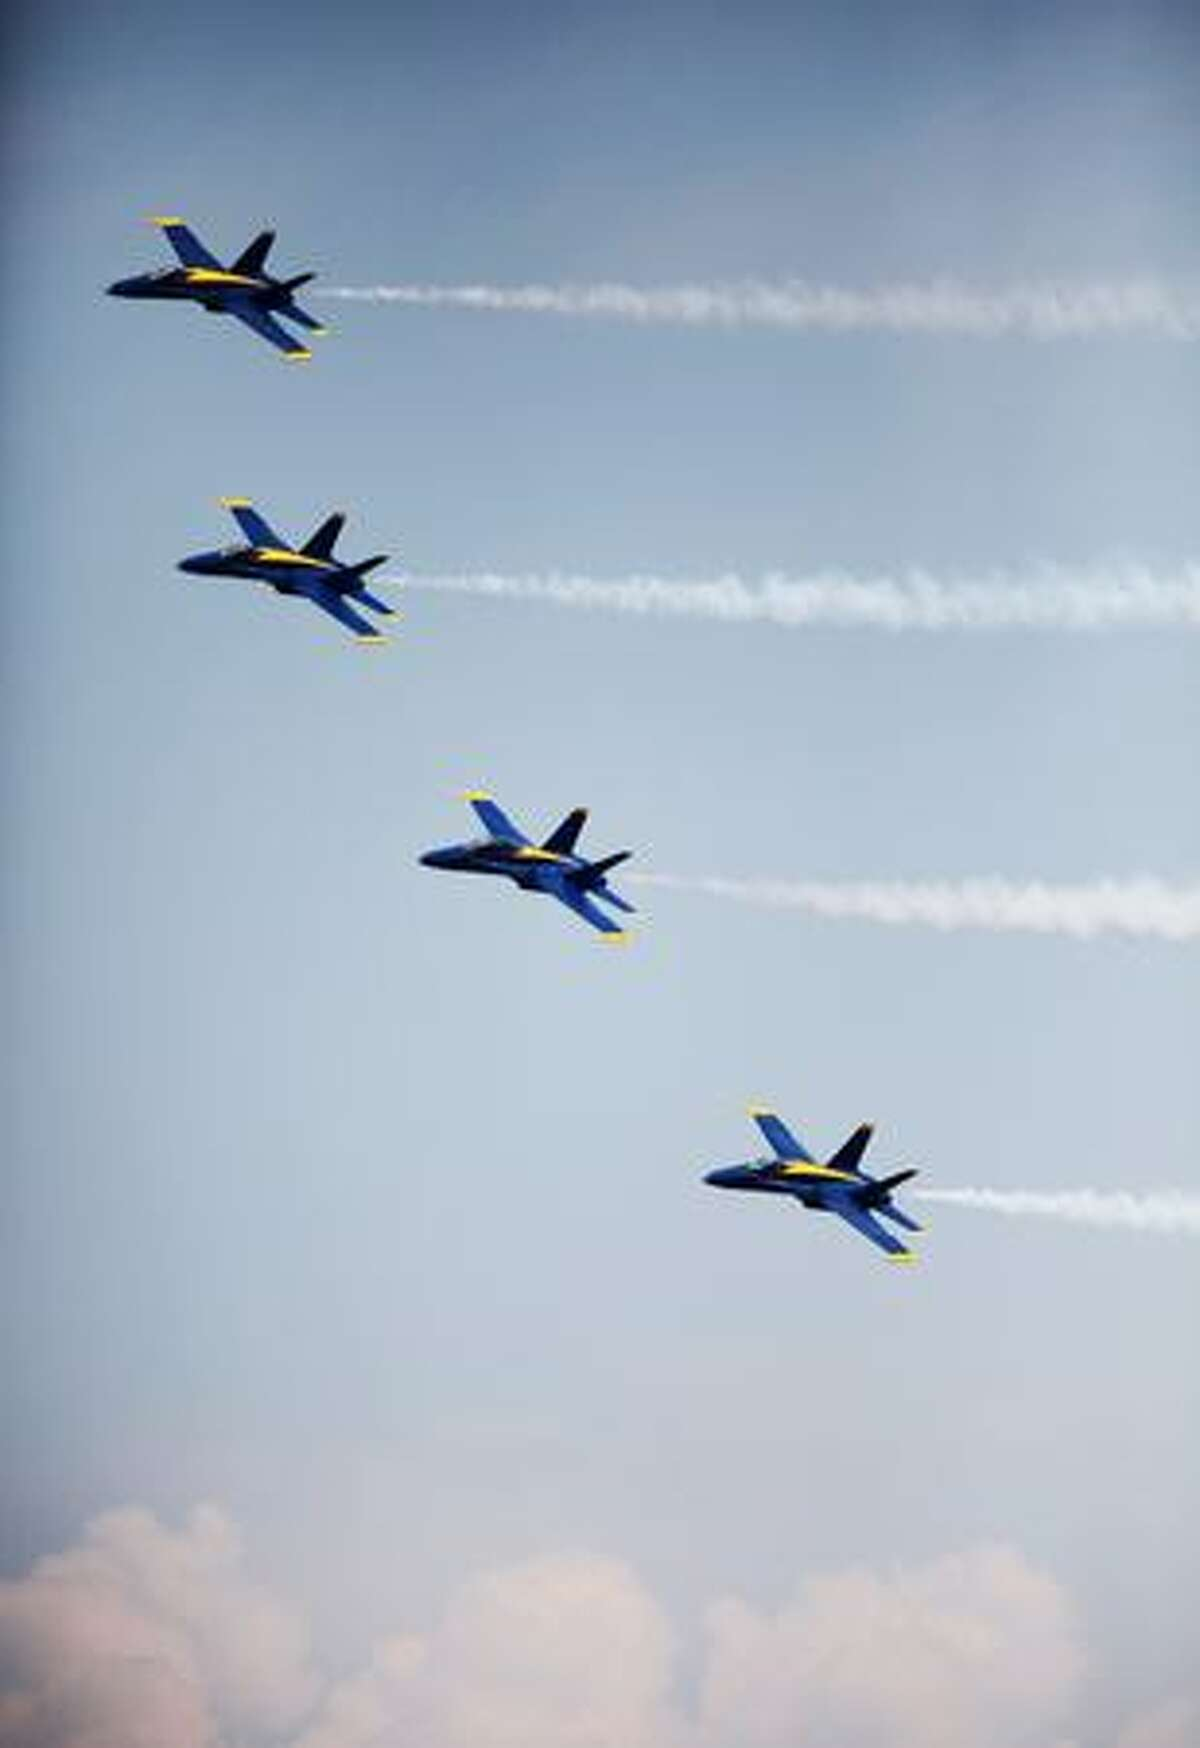 The U.S. Navy Blue Angels demonstration team fly their Boeing F/A-18 Hornets over Lake Washington during a practice on Thursday in Seattle